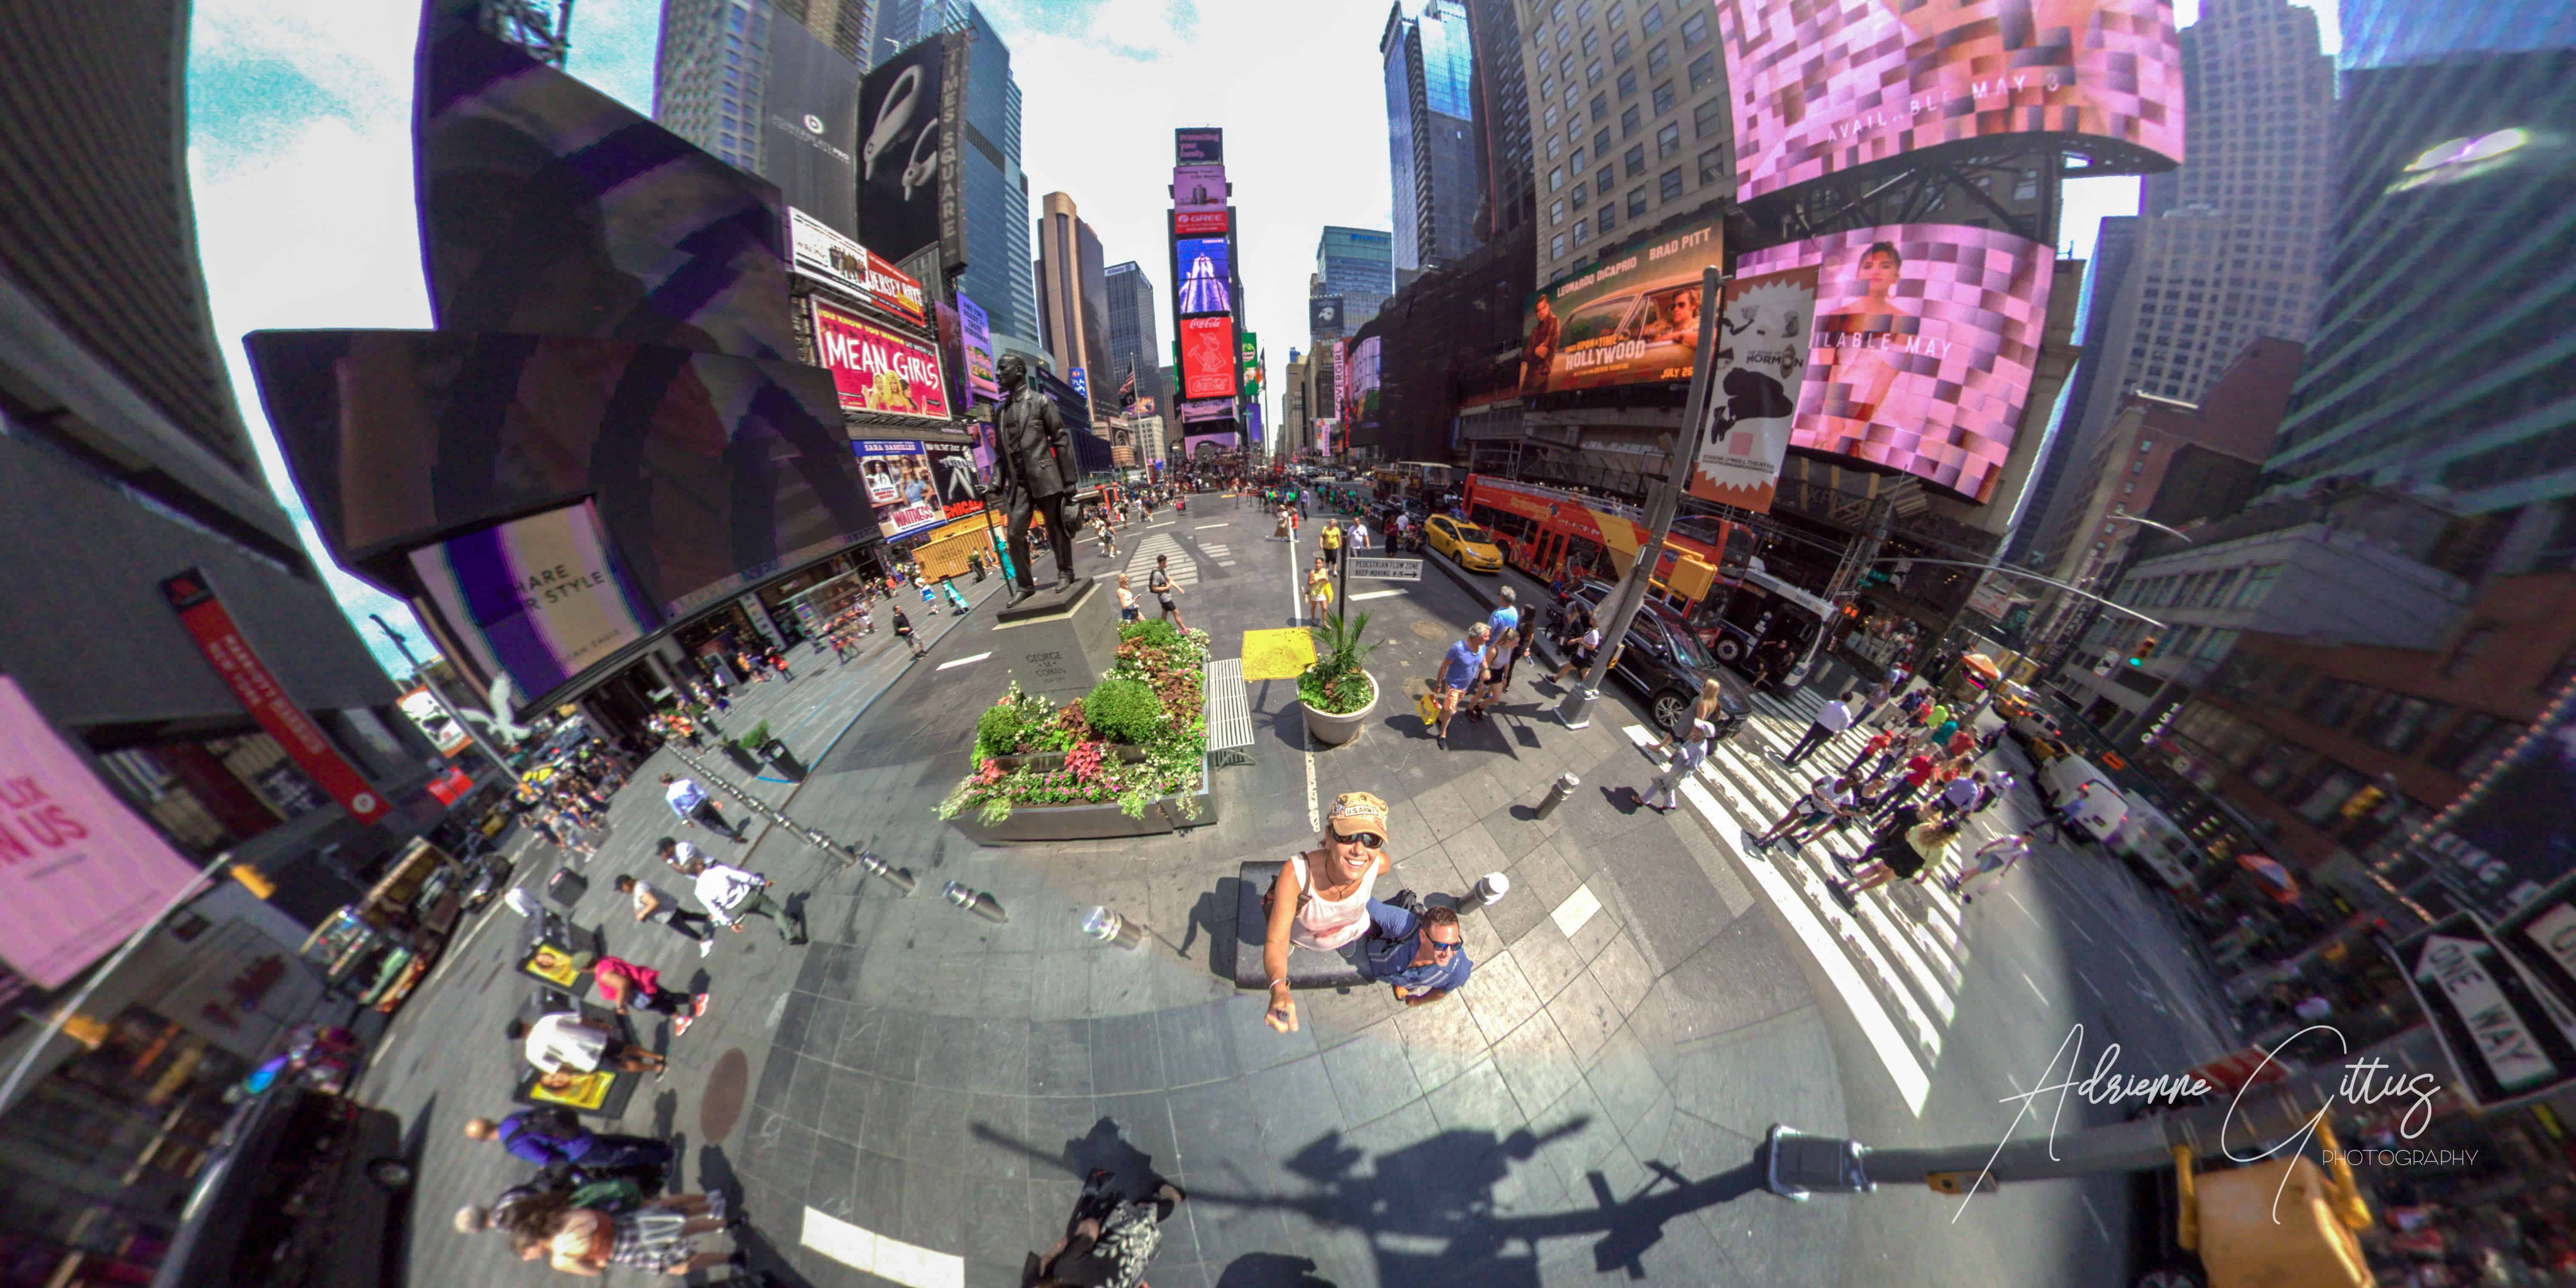 Times Square, New York City, 360 panoramic